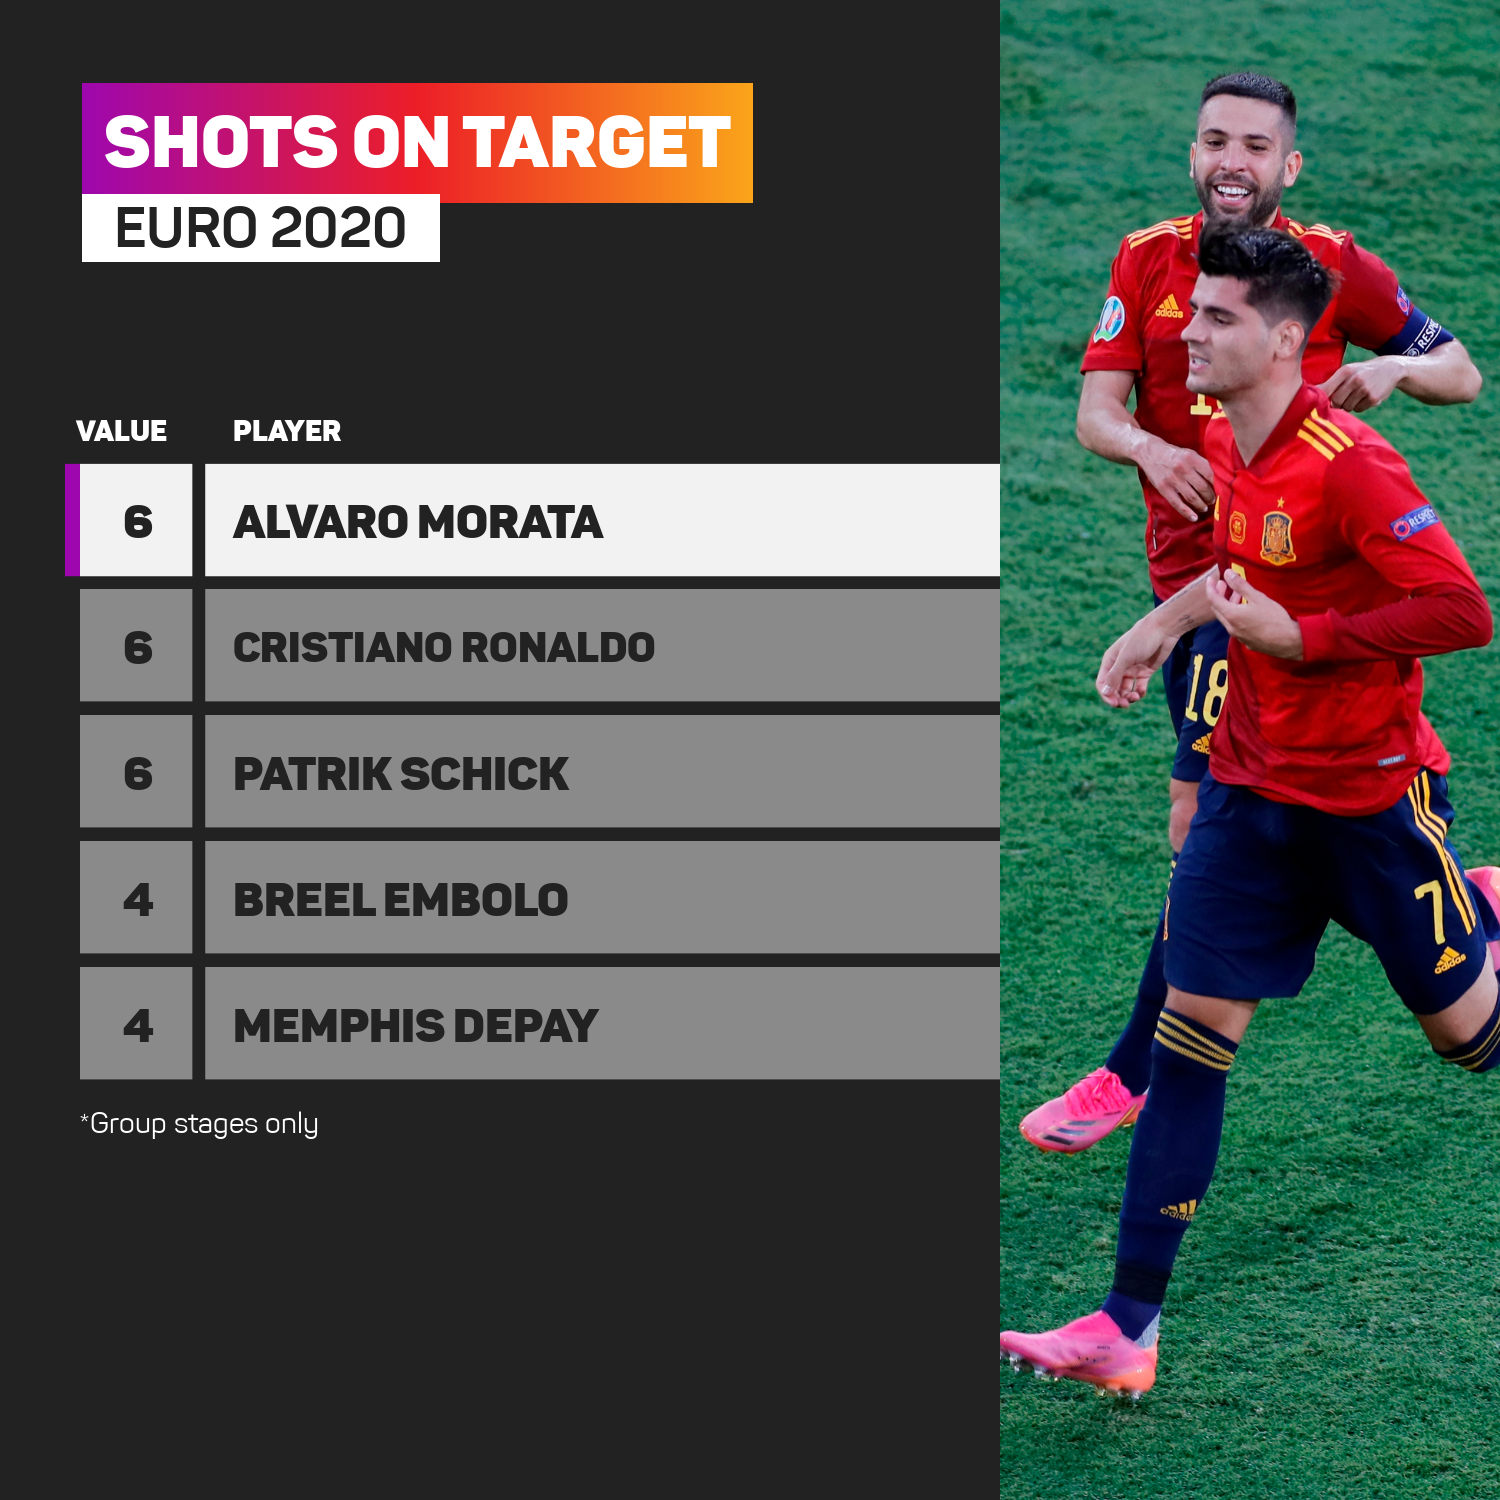 No one had more shots on target than Morata in the Euro 2020 group stages